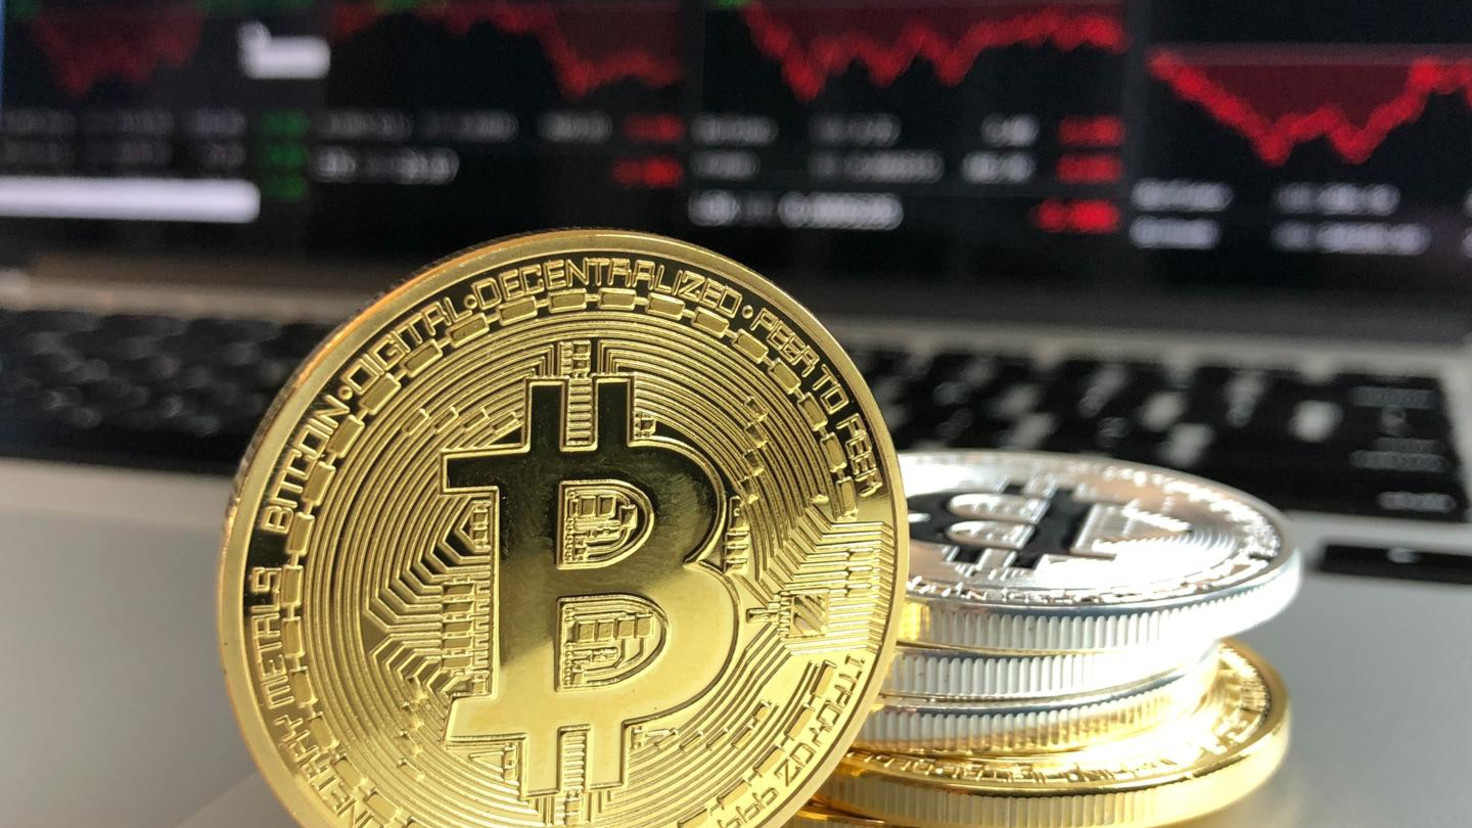 Things to Consider When Choosing a Crypto Trading Platform